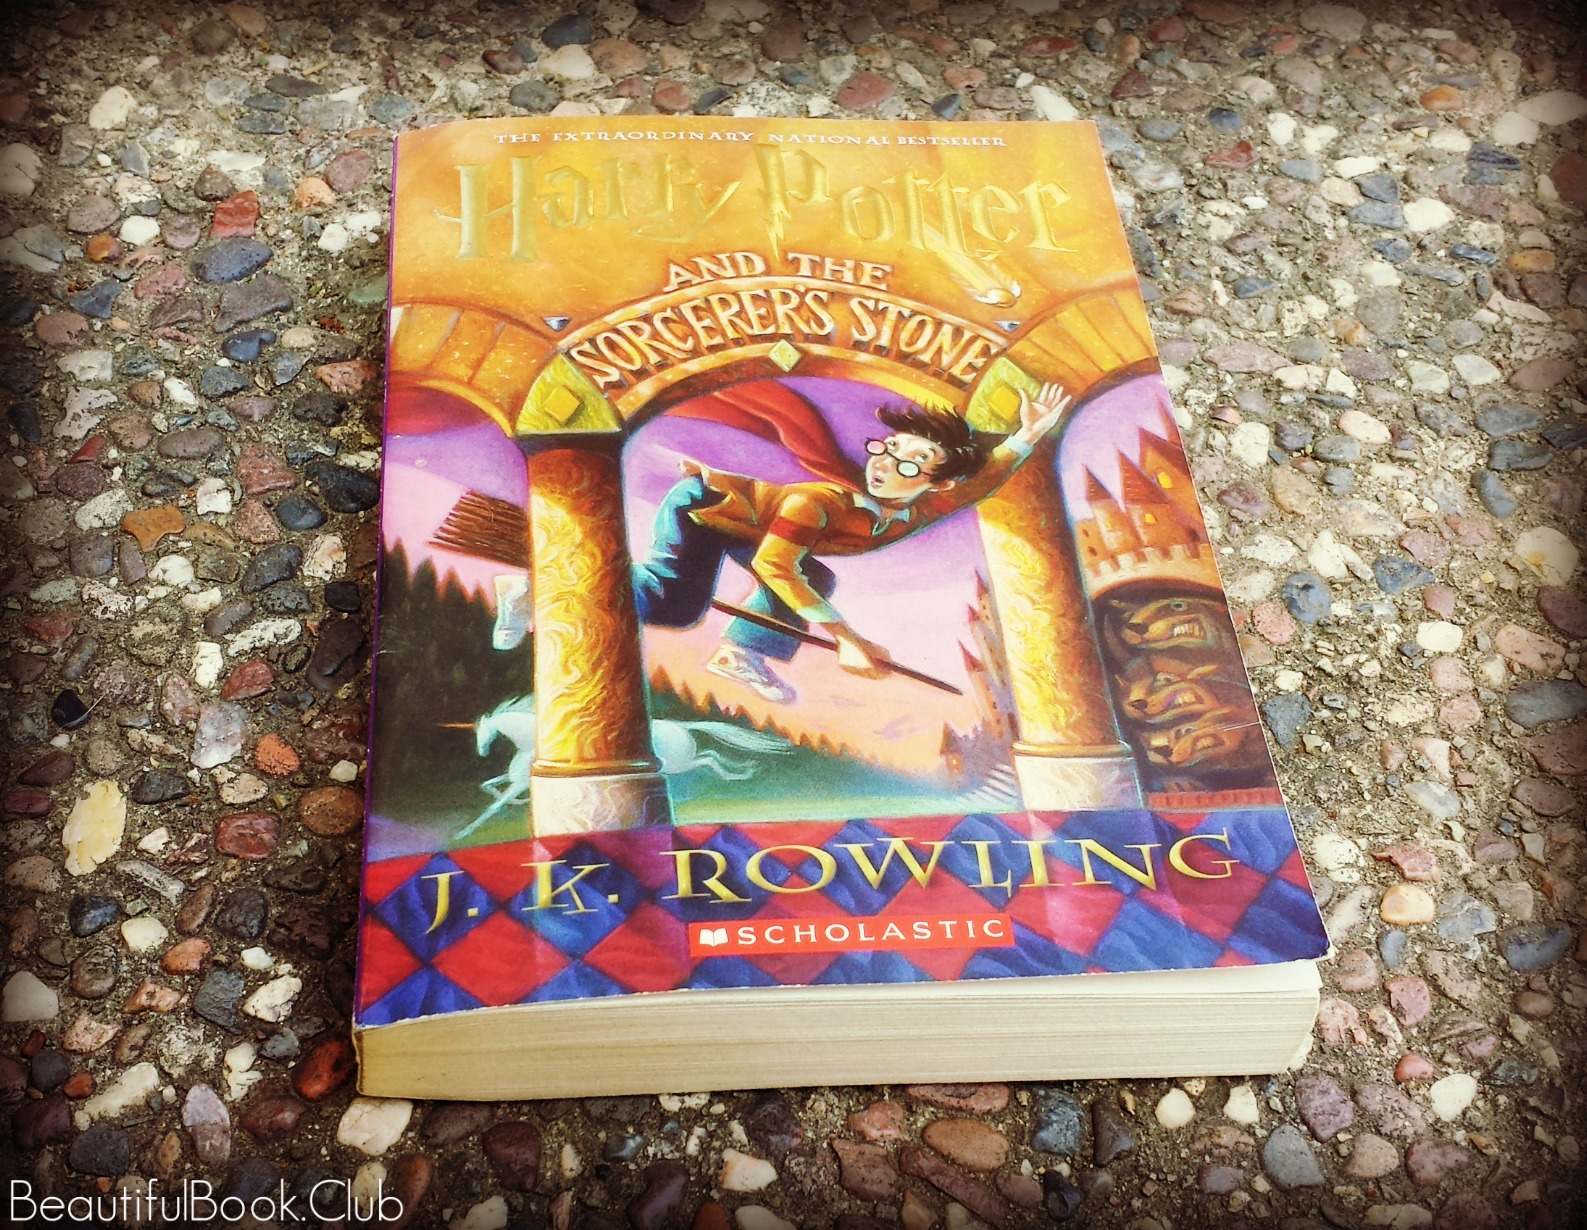 a review of harry potter and the sorcerers stone a novel by j k rowling The production: 35/5 when it was announced that jk rowling's popular novel, harry potter and the sorcerer's stone, would be made into a movie, the filmmakers were challenged to remain faithful to the book as to not alienate it's very young fanbase.